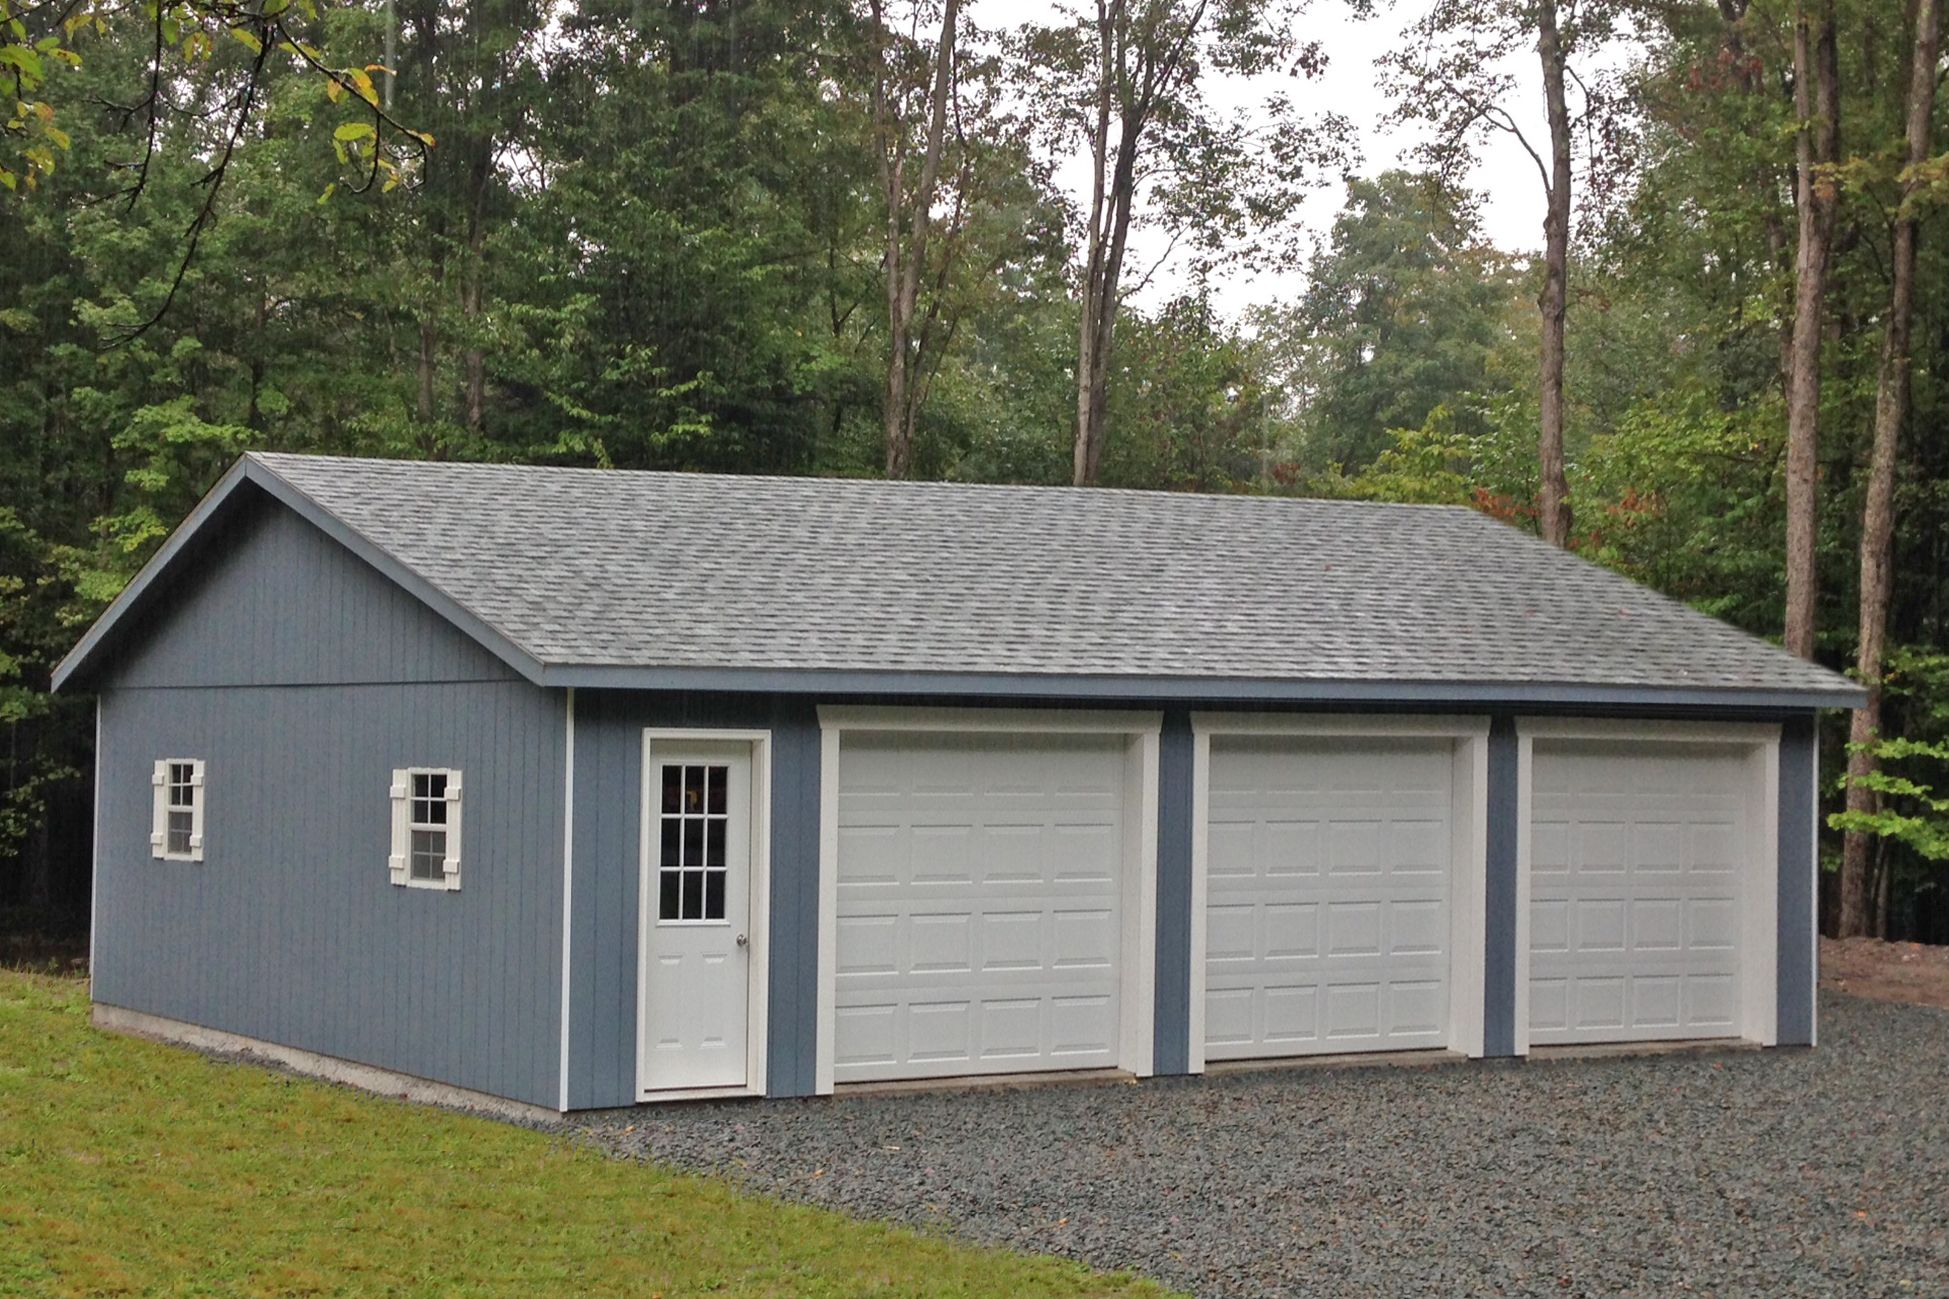 Another 3 Car Garage From Sheds Unlimited Of Lancaster Pa A 28x40 Like This Direct The Builder In County And Save